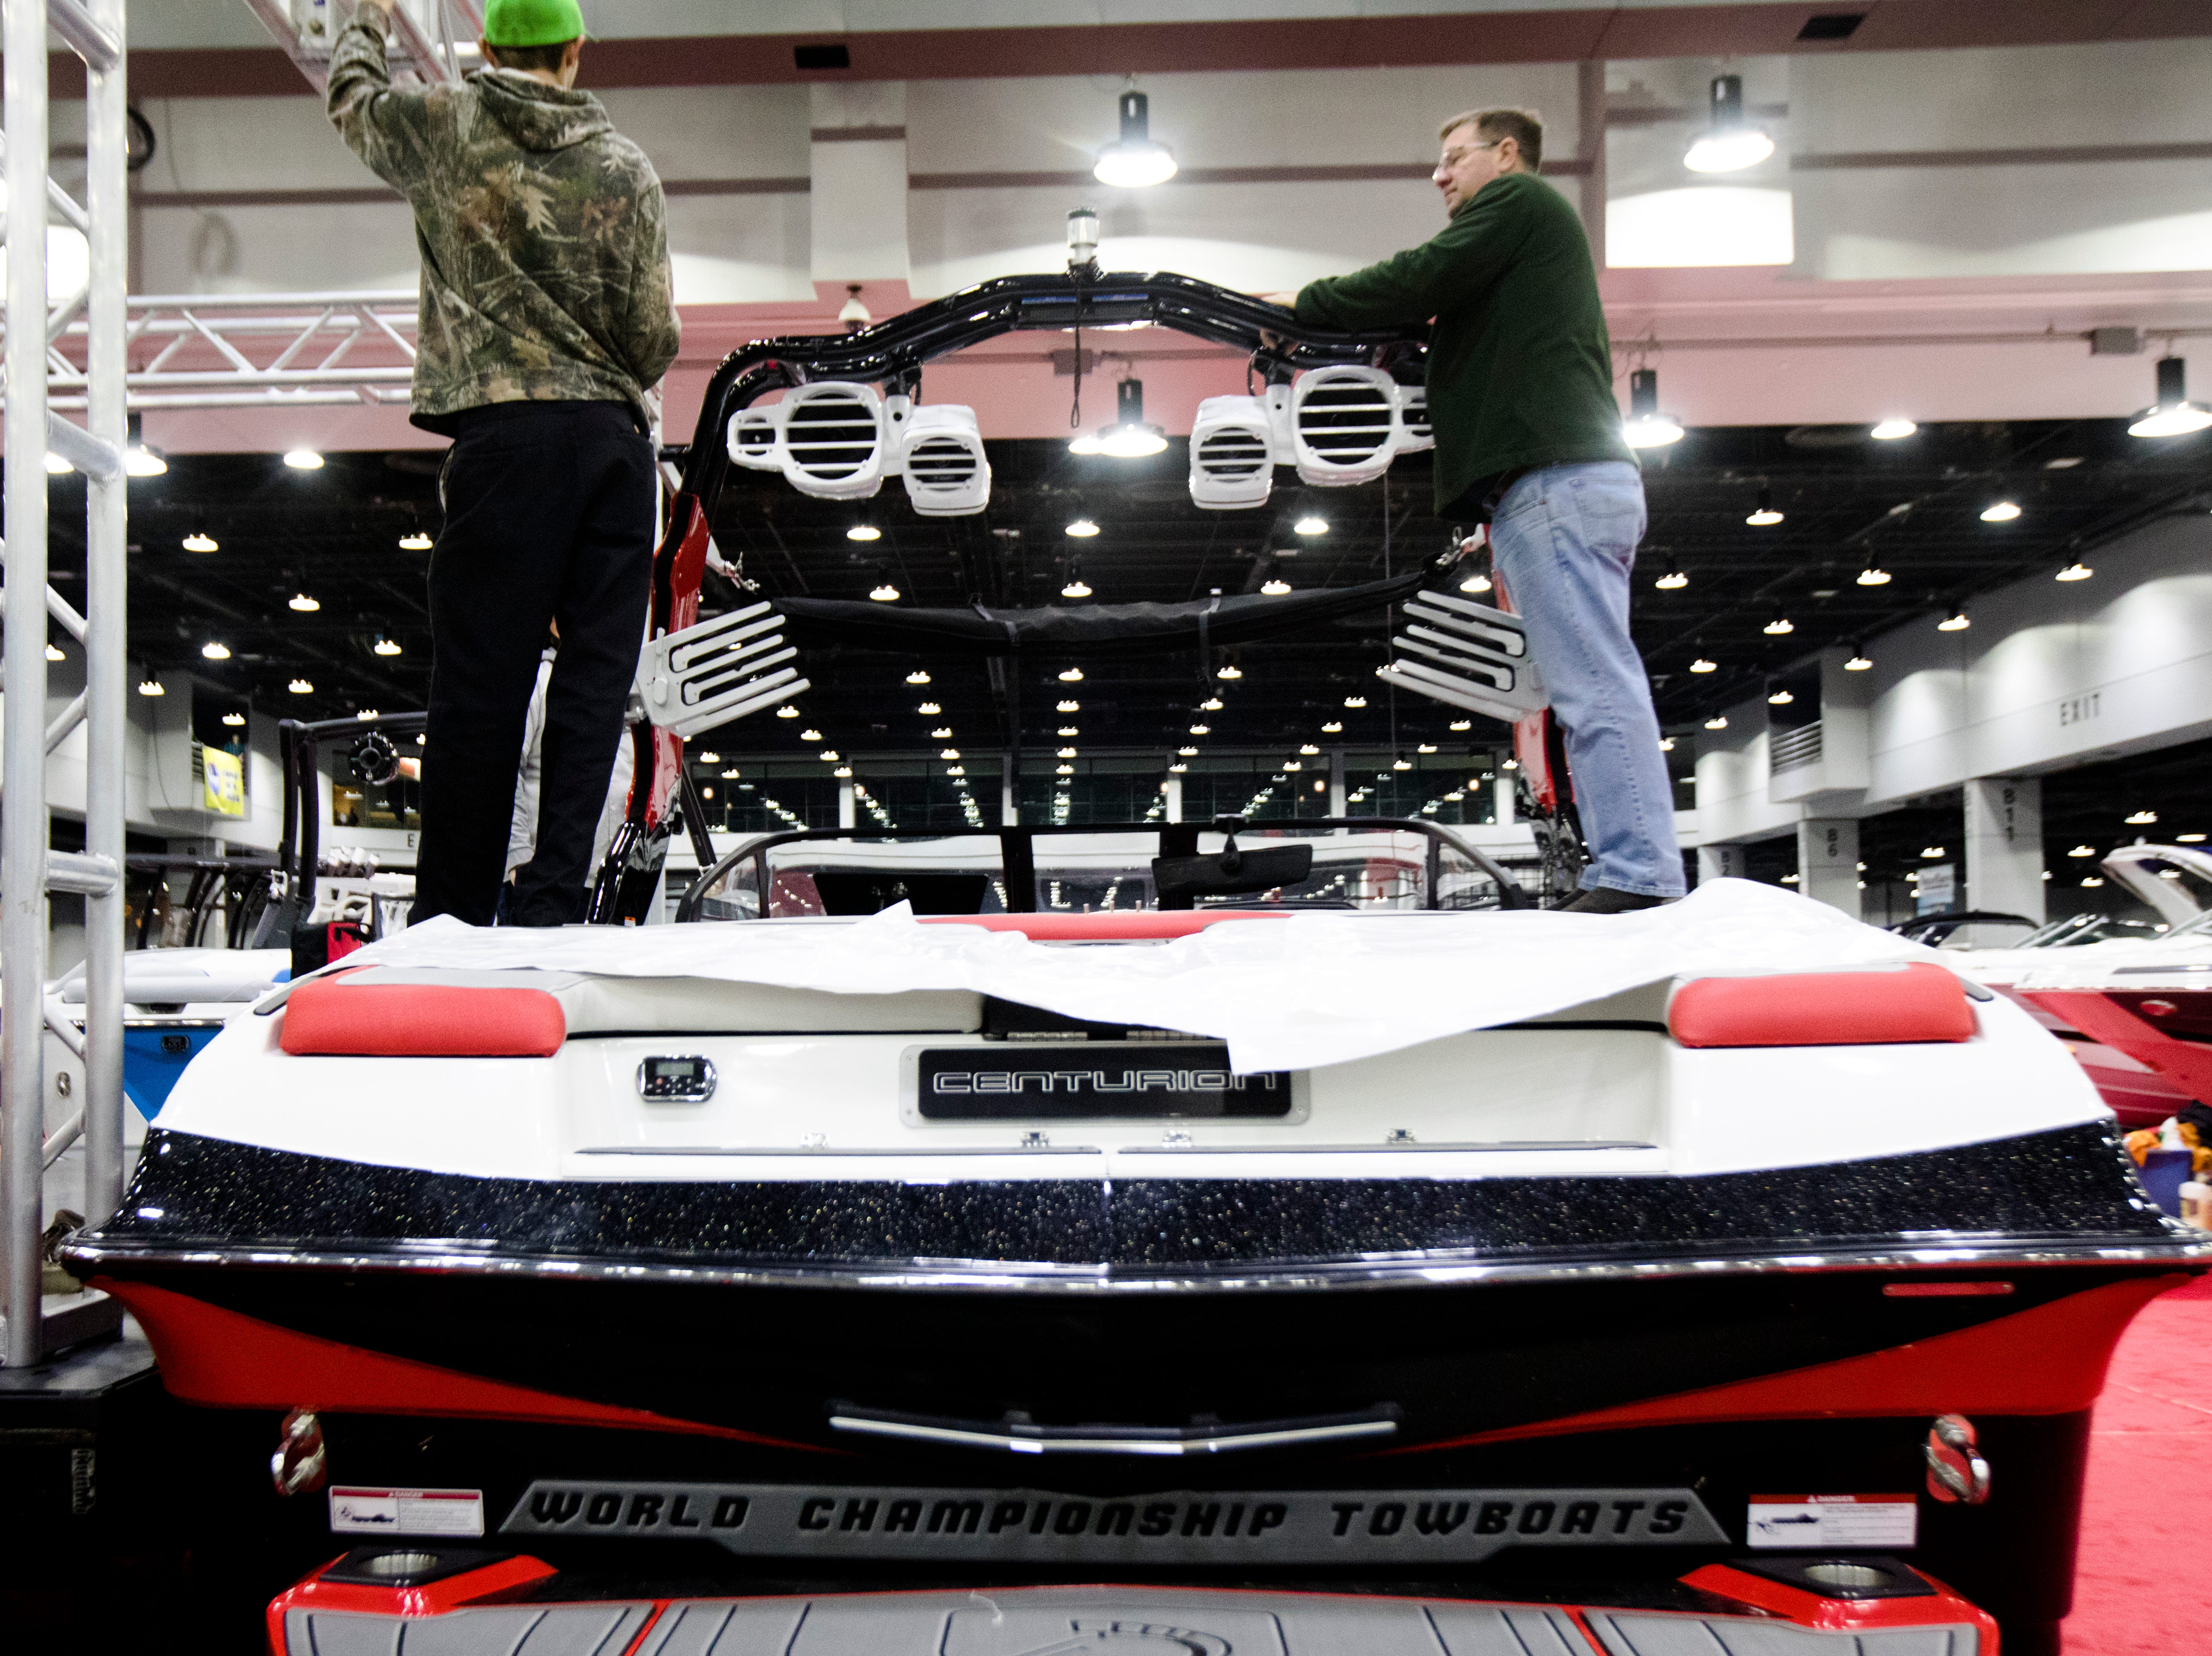 People work setting up the Centurion at the annual Cincinnati Travel Sports and Boat Show on Wednesday, Jan. 16, 2018 at the Duke Energy Convention Center in Downtown Cincinnati.